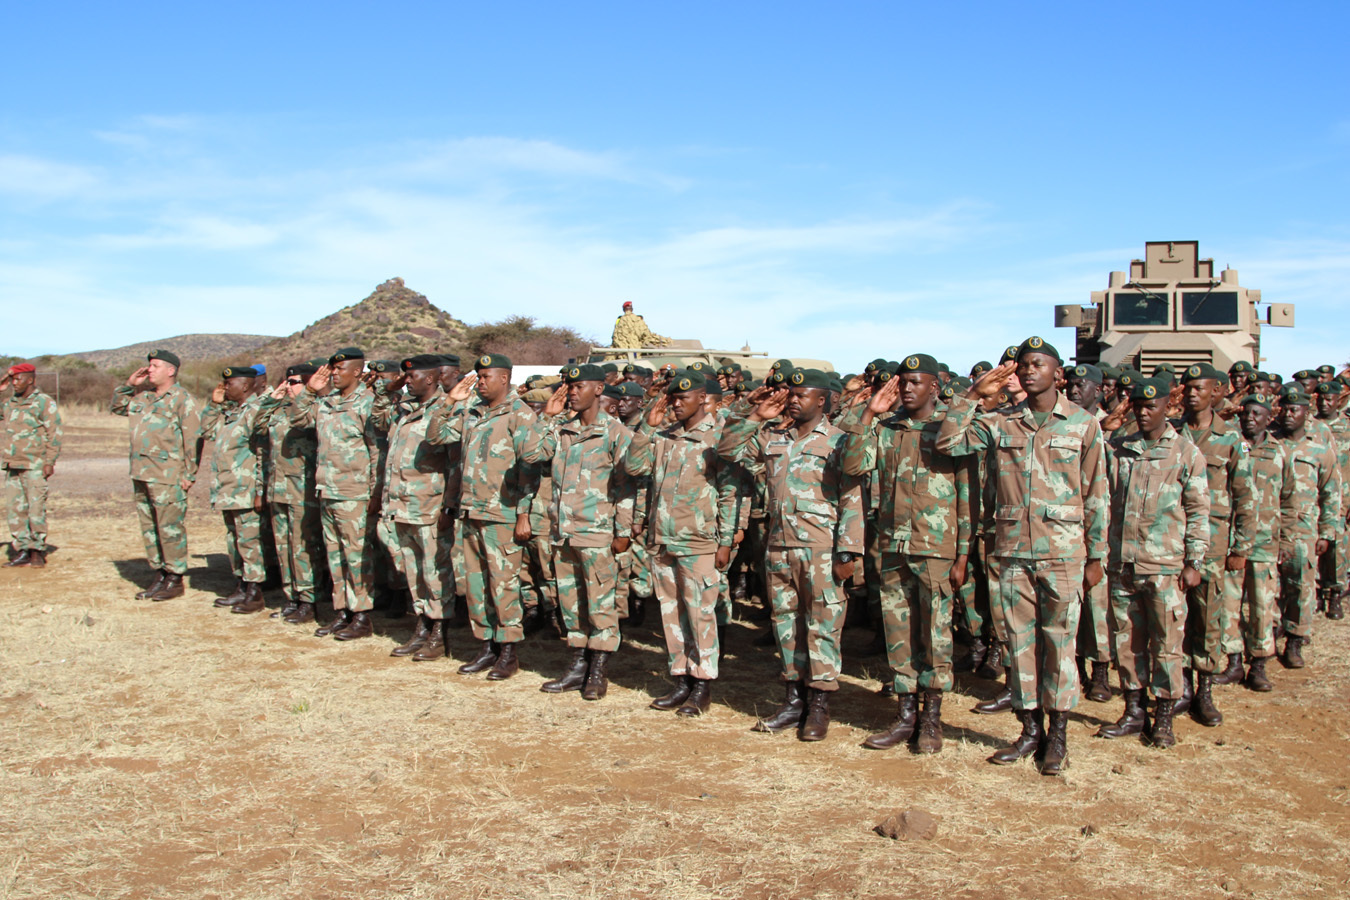 A platoon of South African soldiers salute during the playing of the South African and U.S. National Anthems during the opening ceremony for Shared Accord 2017 at the South African Army Combat Training Center, Lohatla, South Africa. During SA 17, South African and U.S. forces trained together in areas such as counter-IED training, strong point defense and offensive operations and Peacekeeping scenarios. The exercise culminates with a unilateral, combined arms maneuver live-fire demonstration.